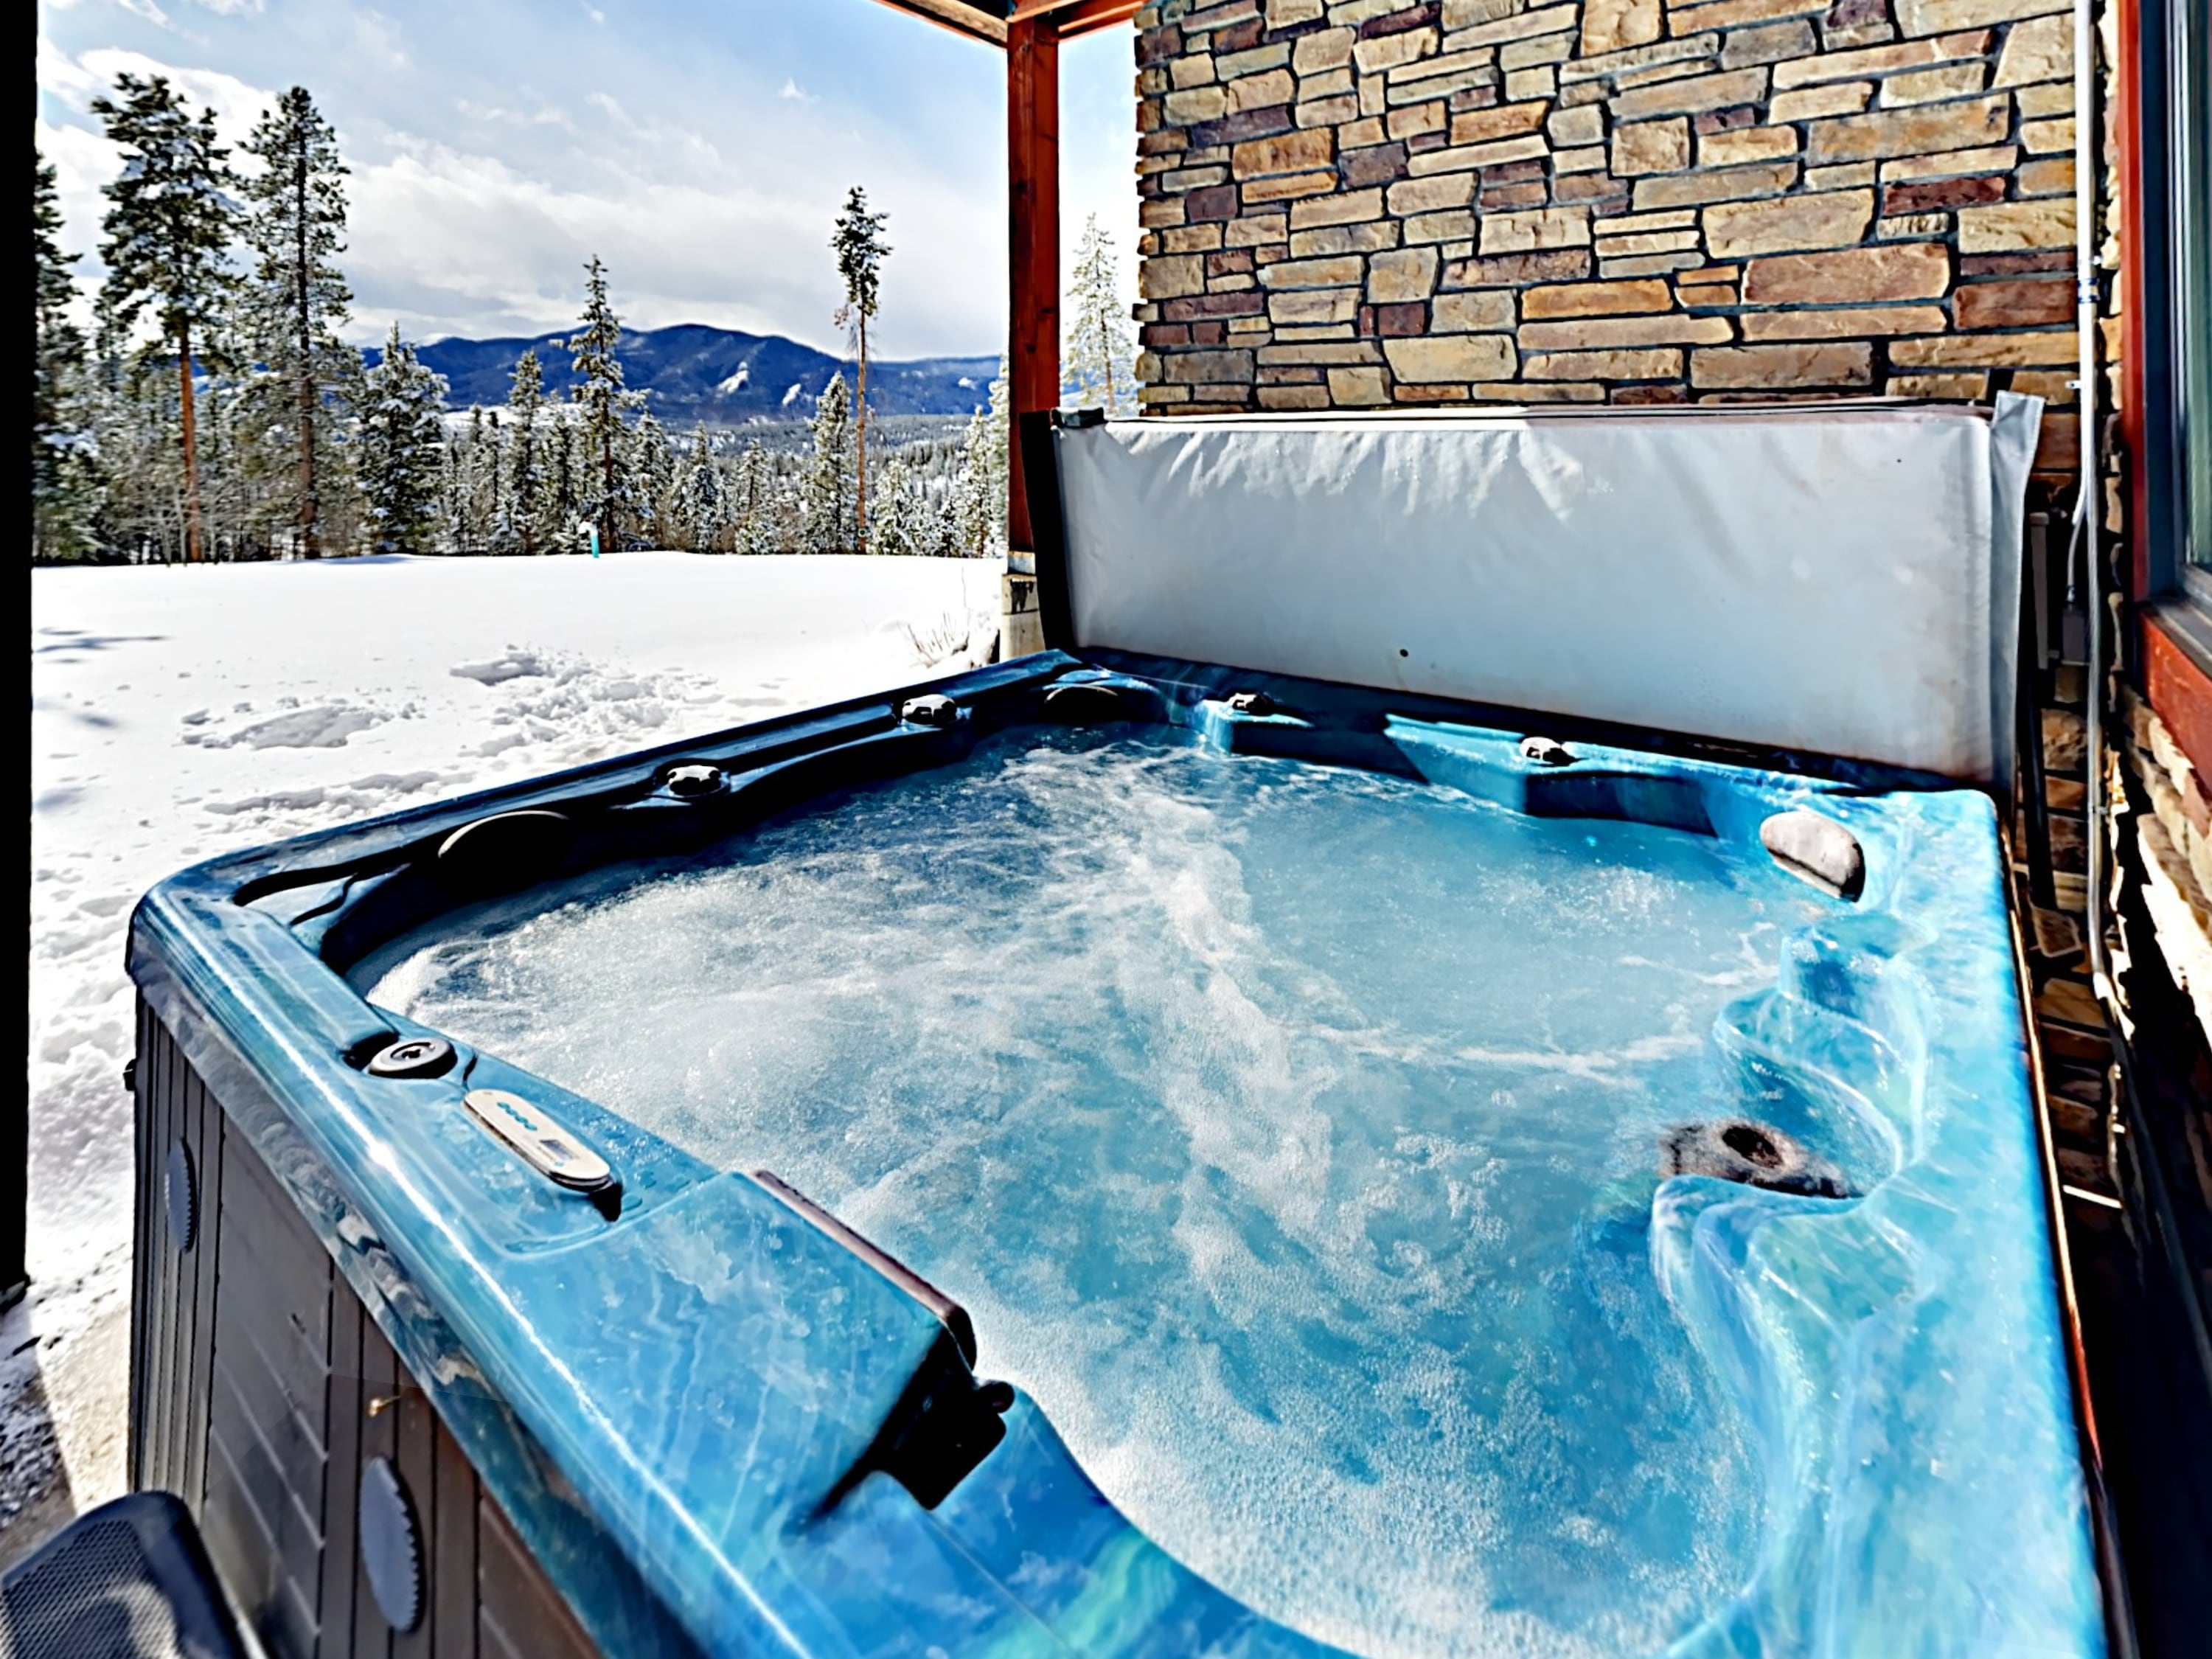 Slide into the bubbling hot tub after a fun day of alpine adventure.